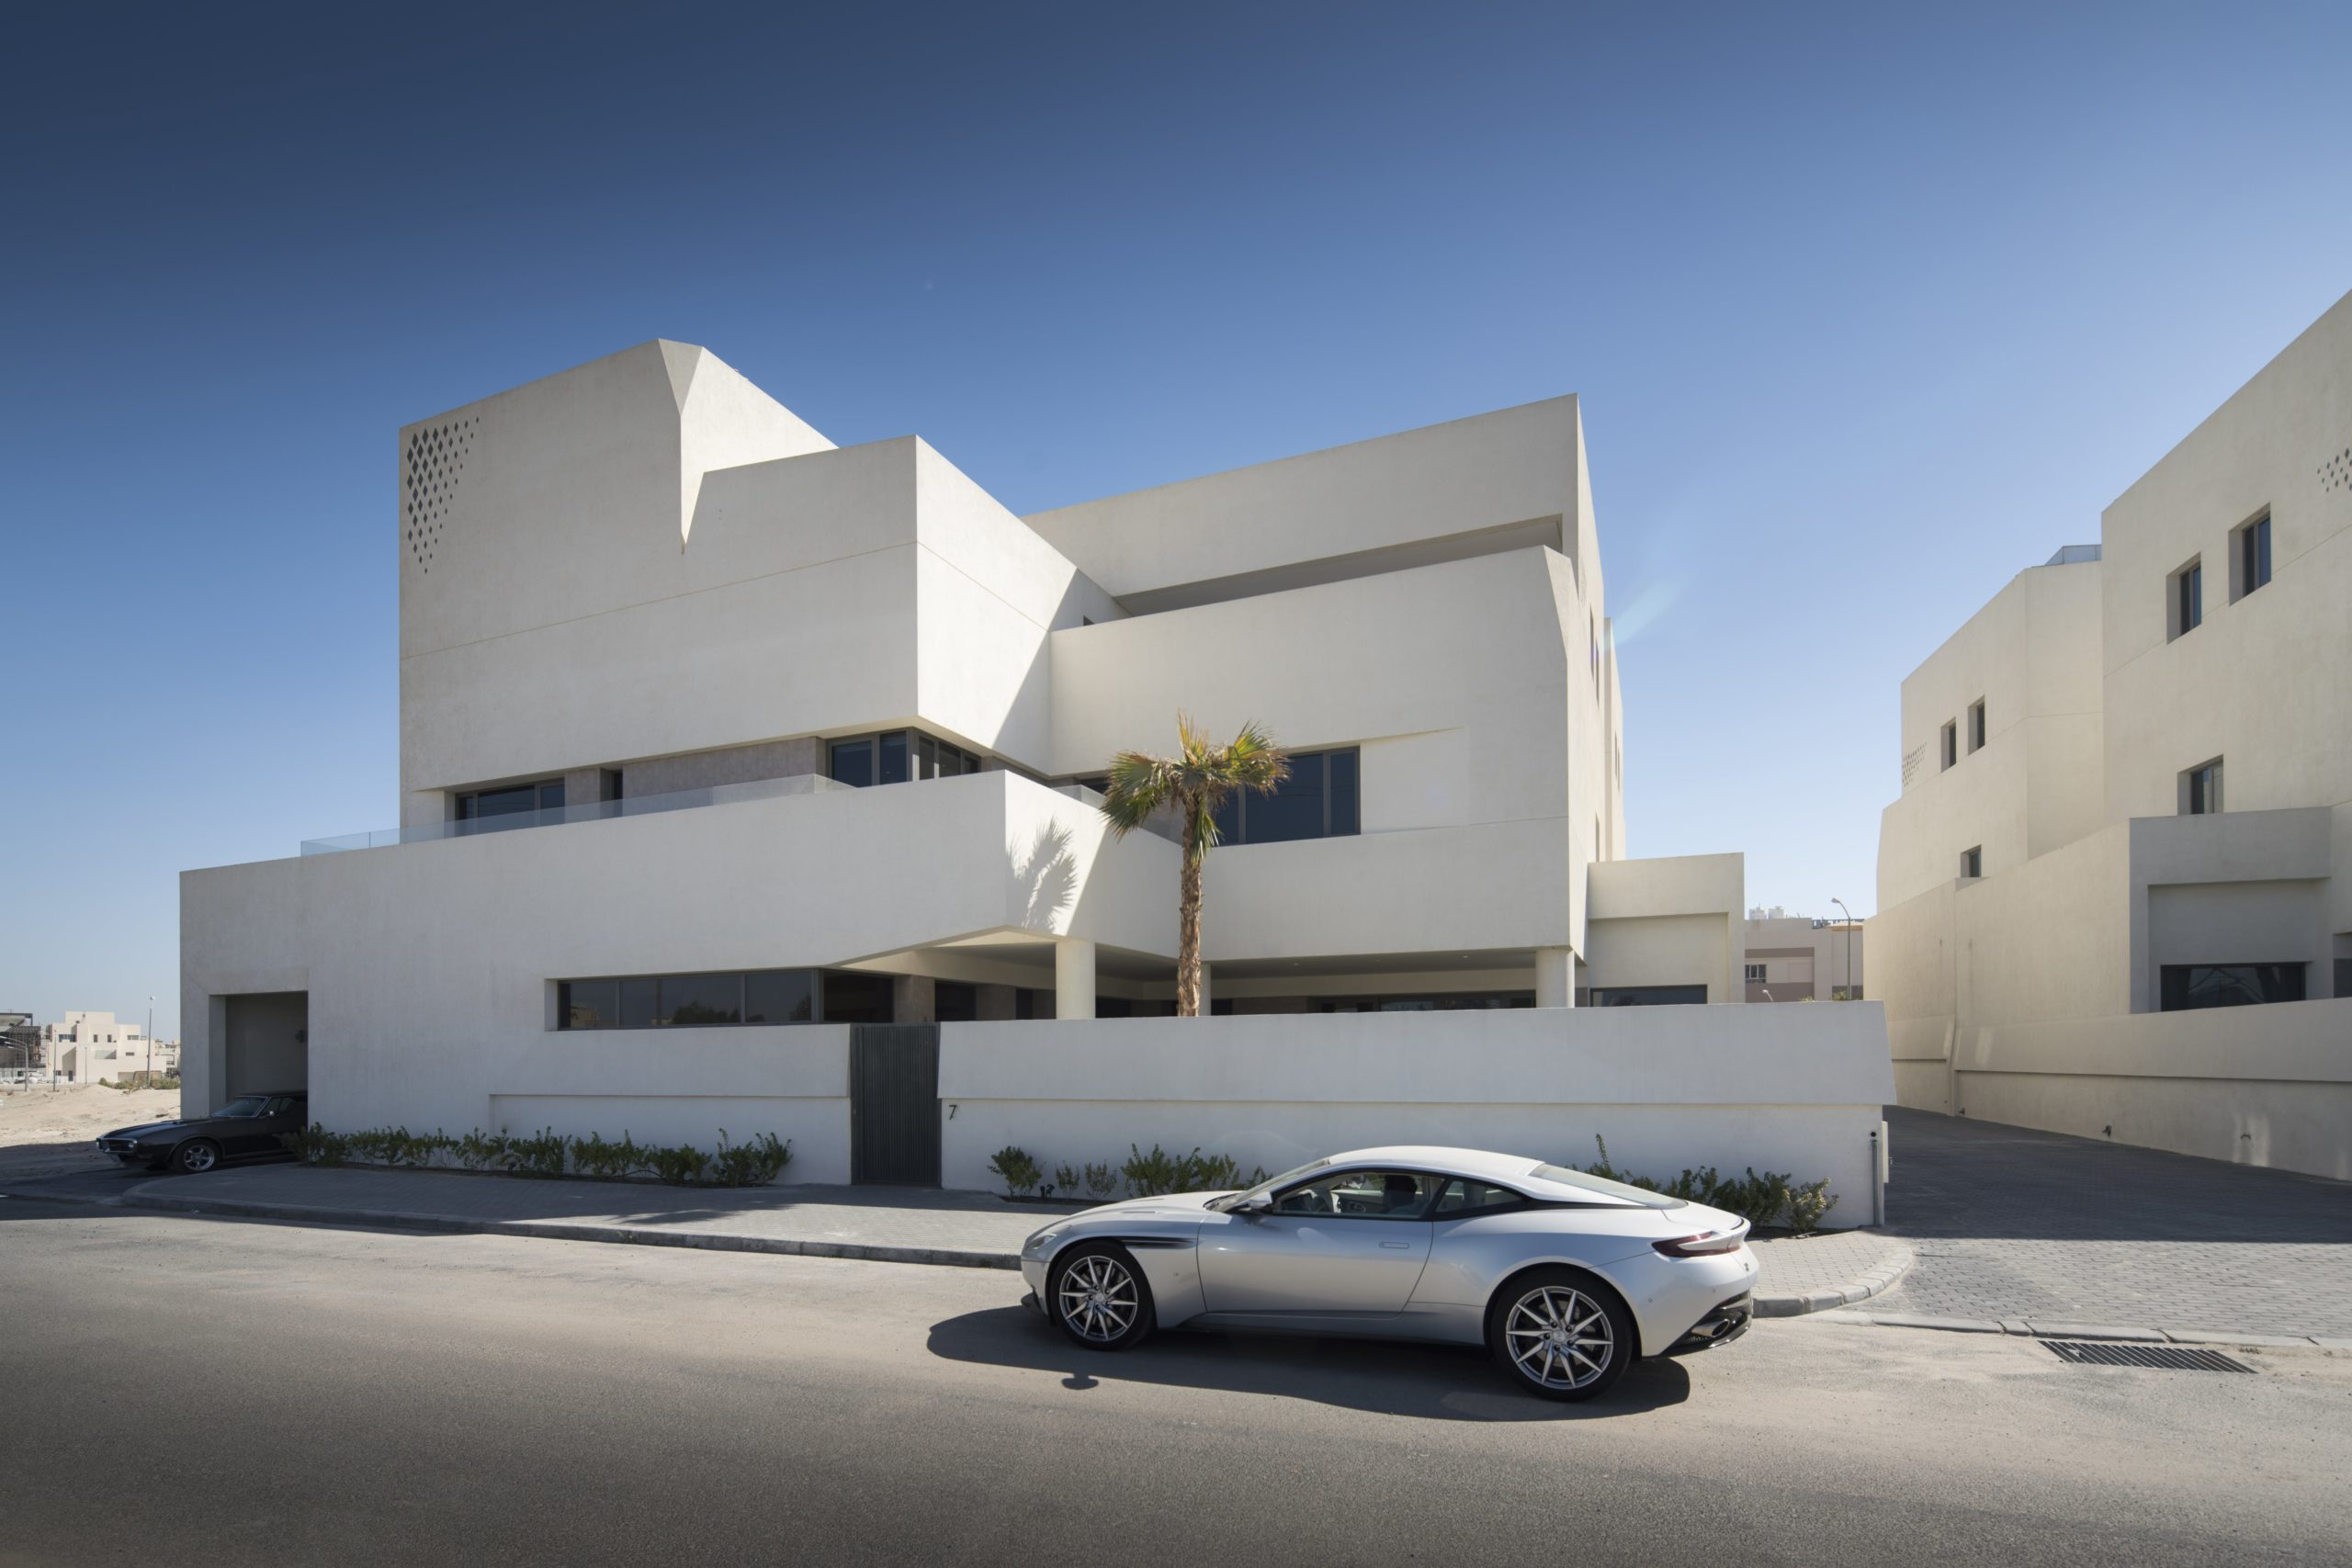 This is a view of the front of the house that has a modern design and bright exterior walls.